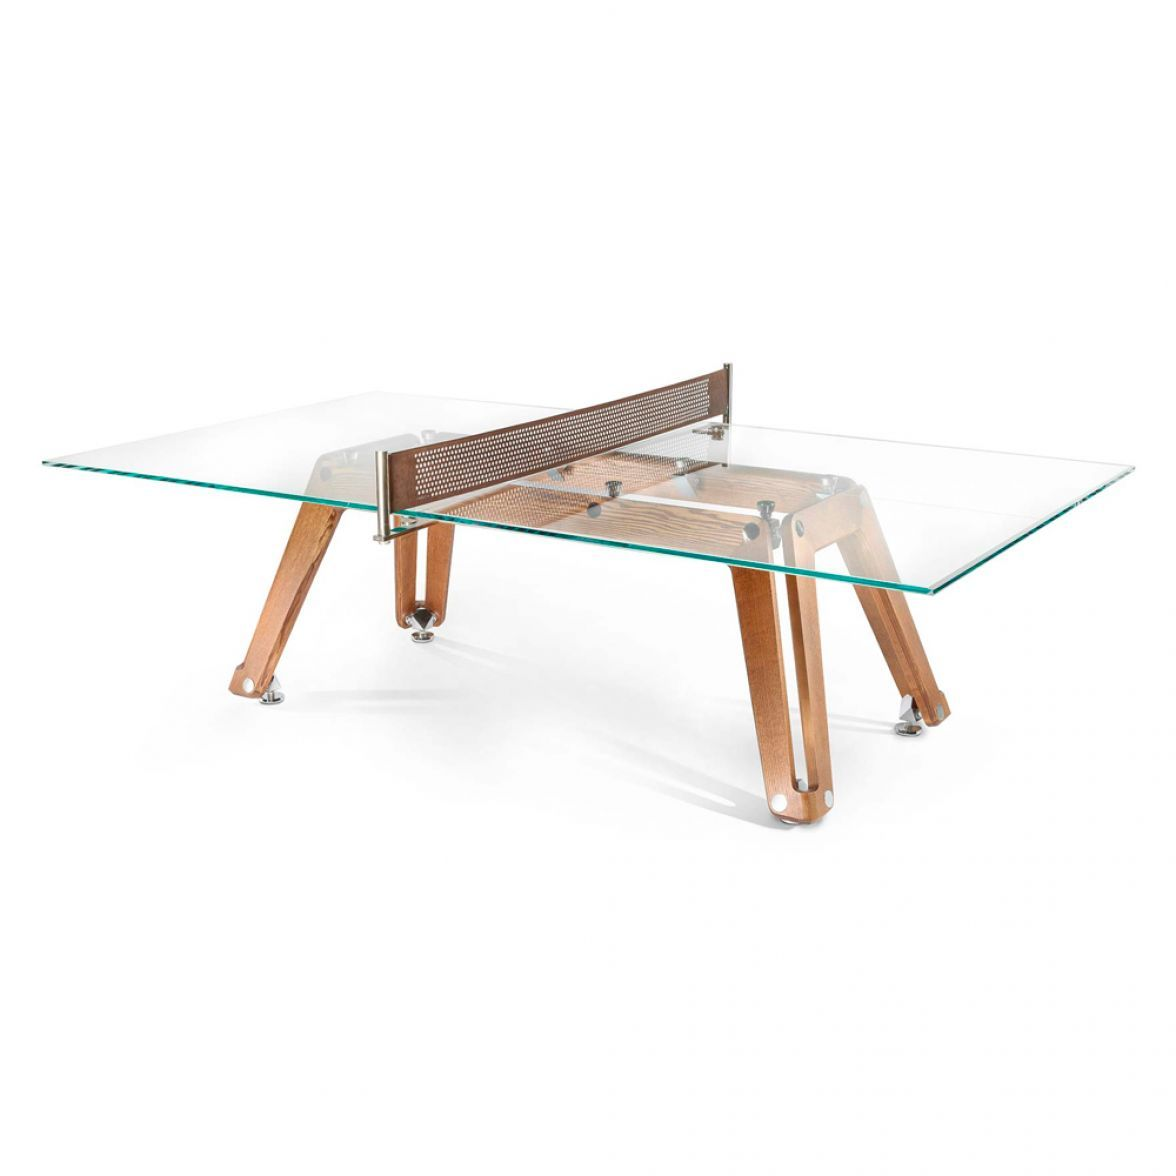 LUNGOLINEA WOOD tennis table